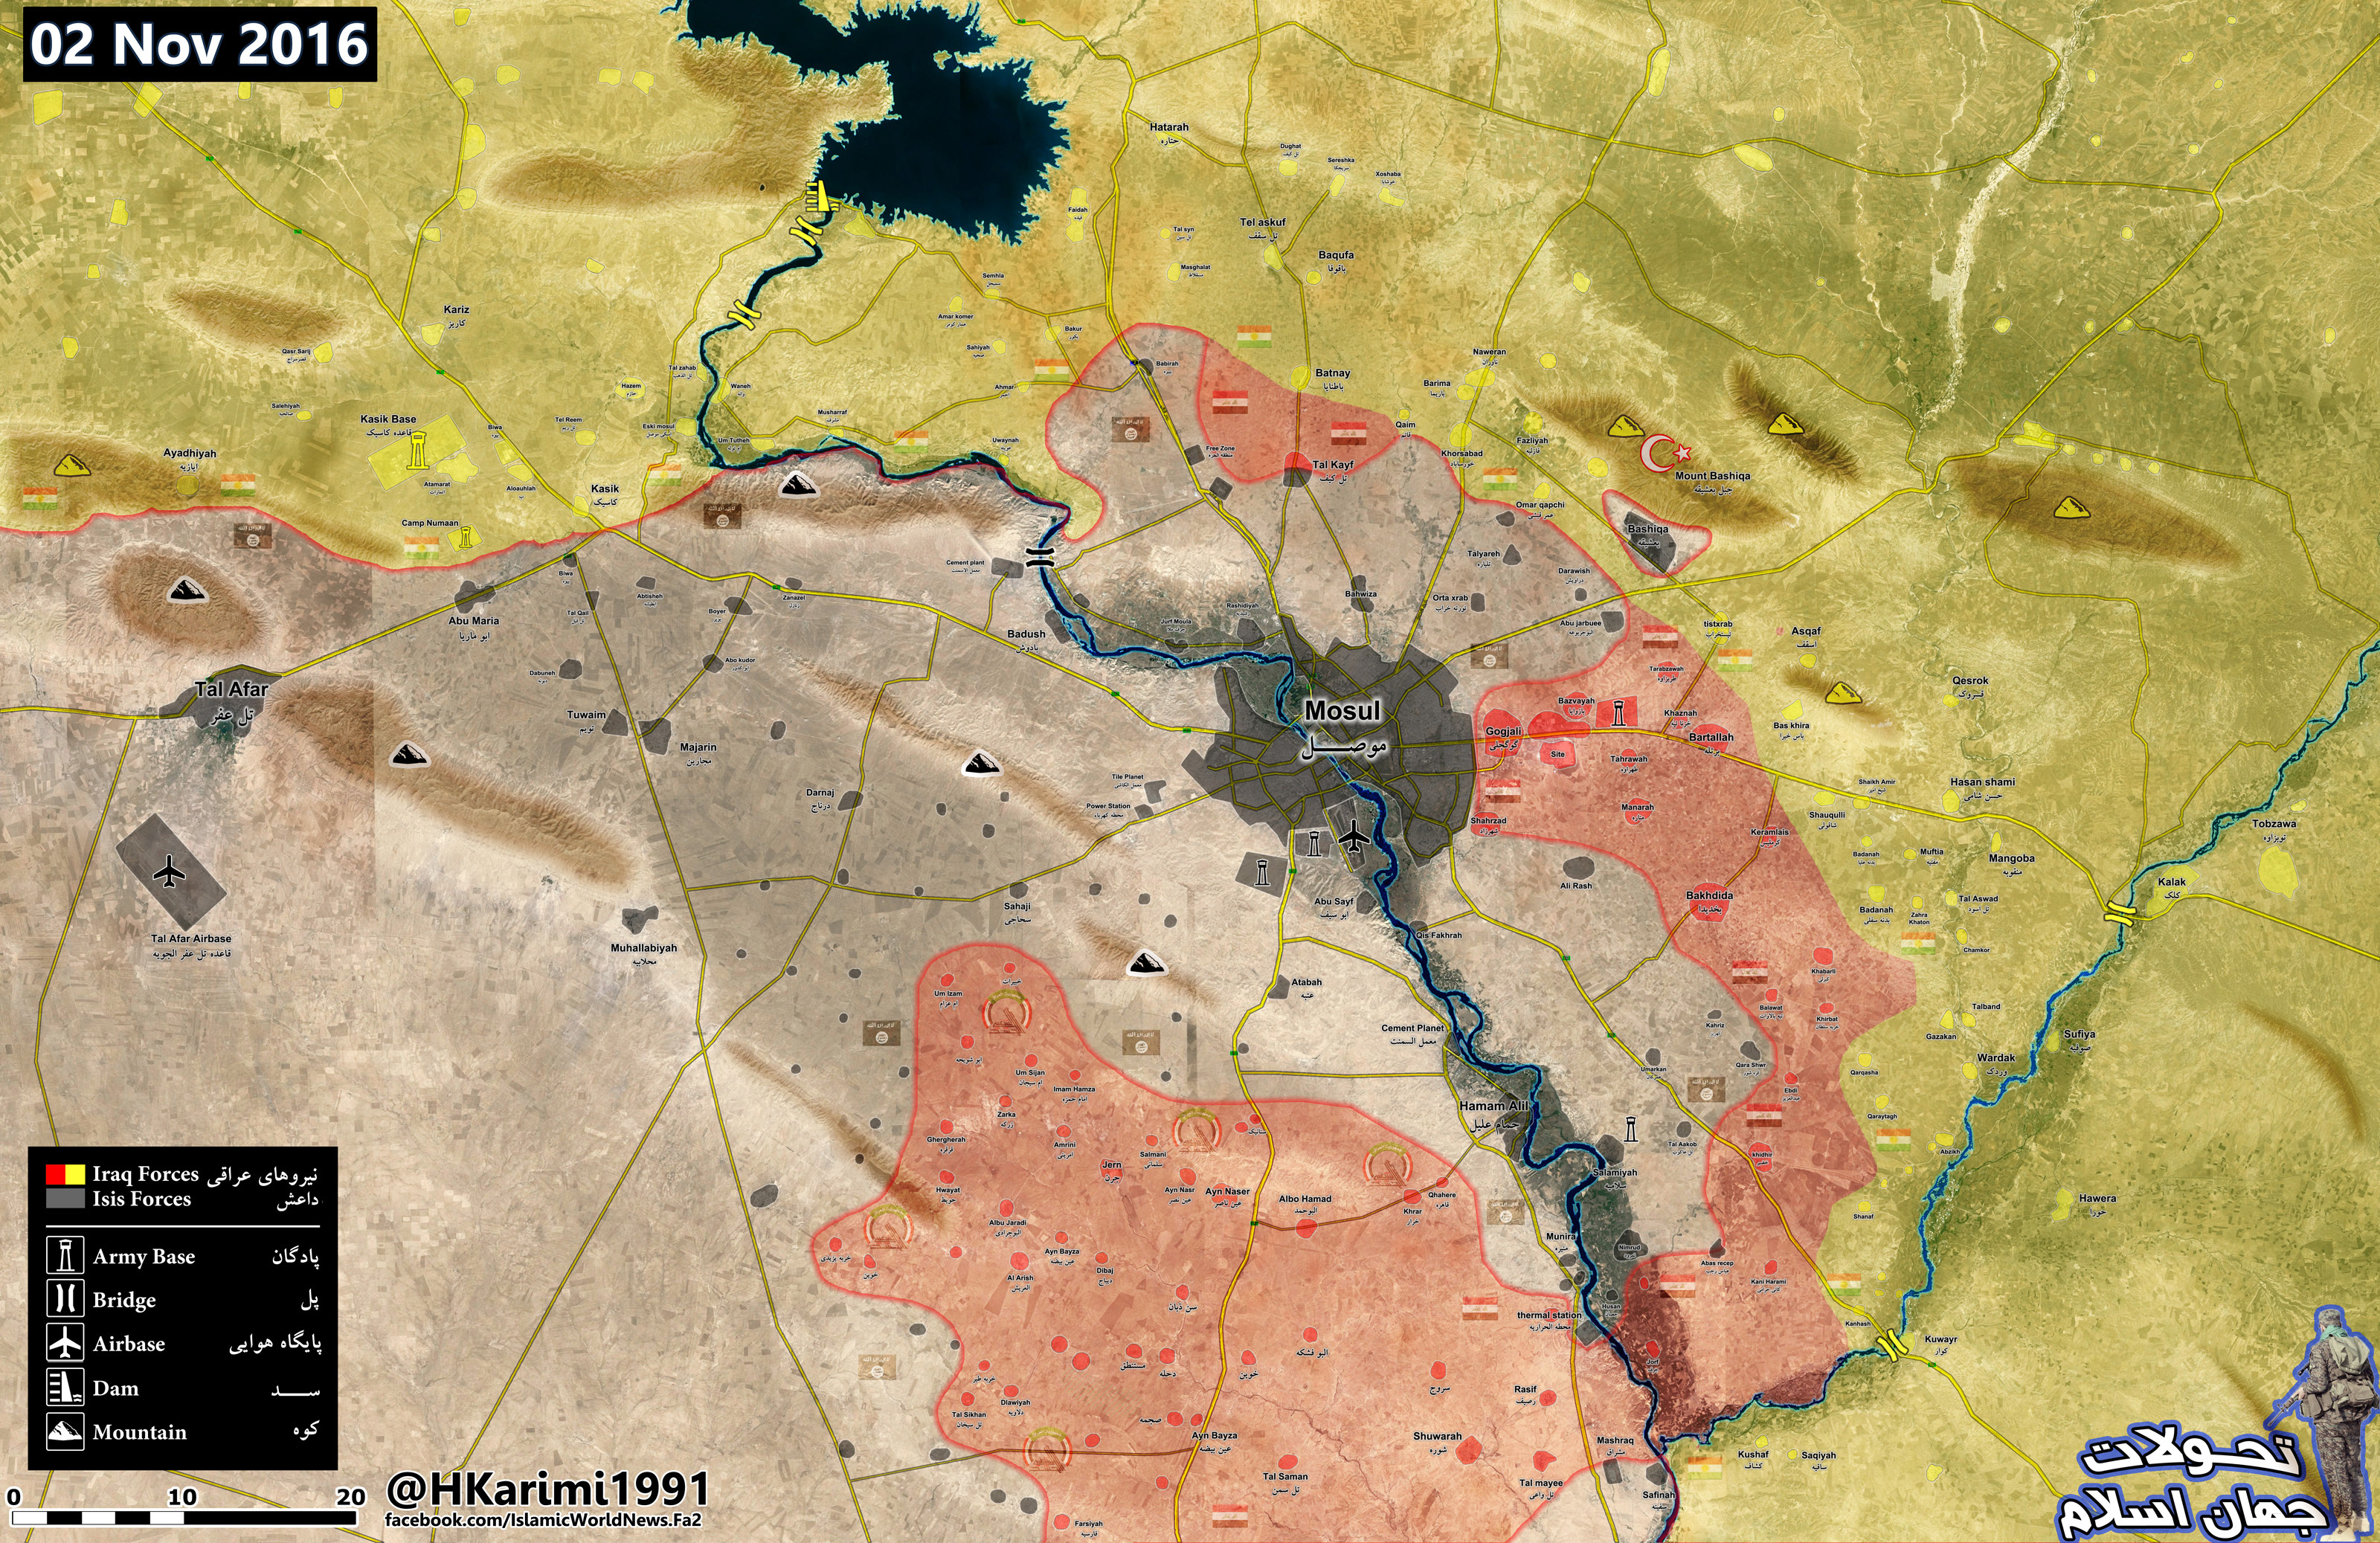 Iraqi Map Update: Iraqi Military and Popular Mobilization Units Shape Battleground in Mosul Countryside